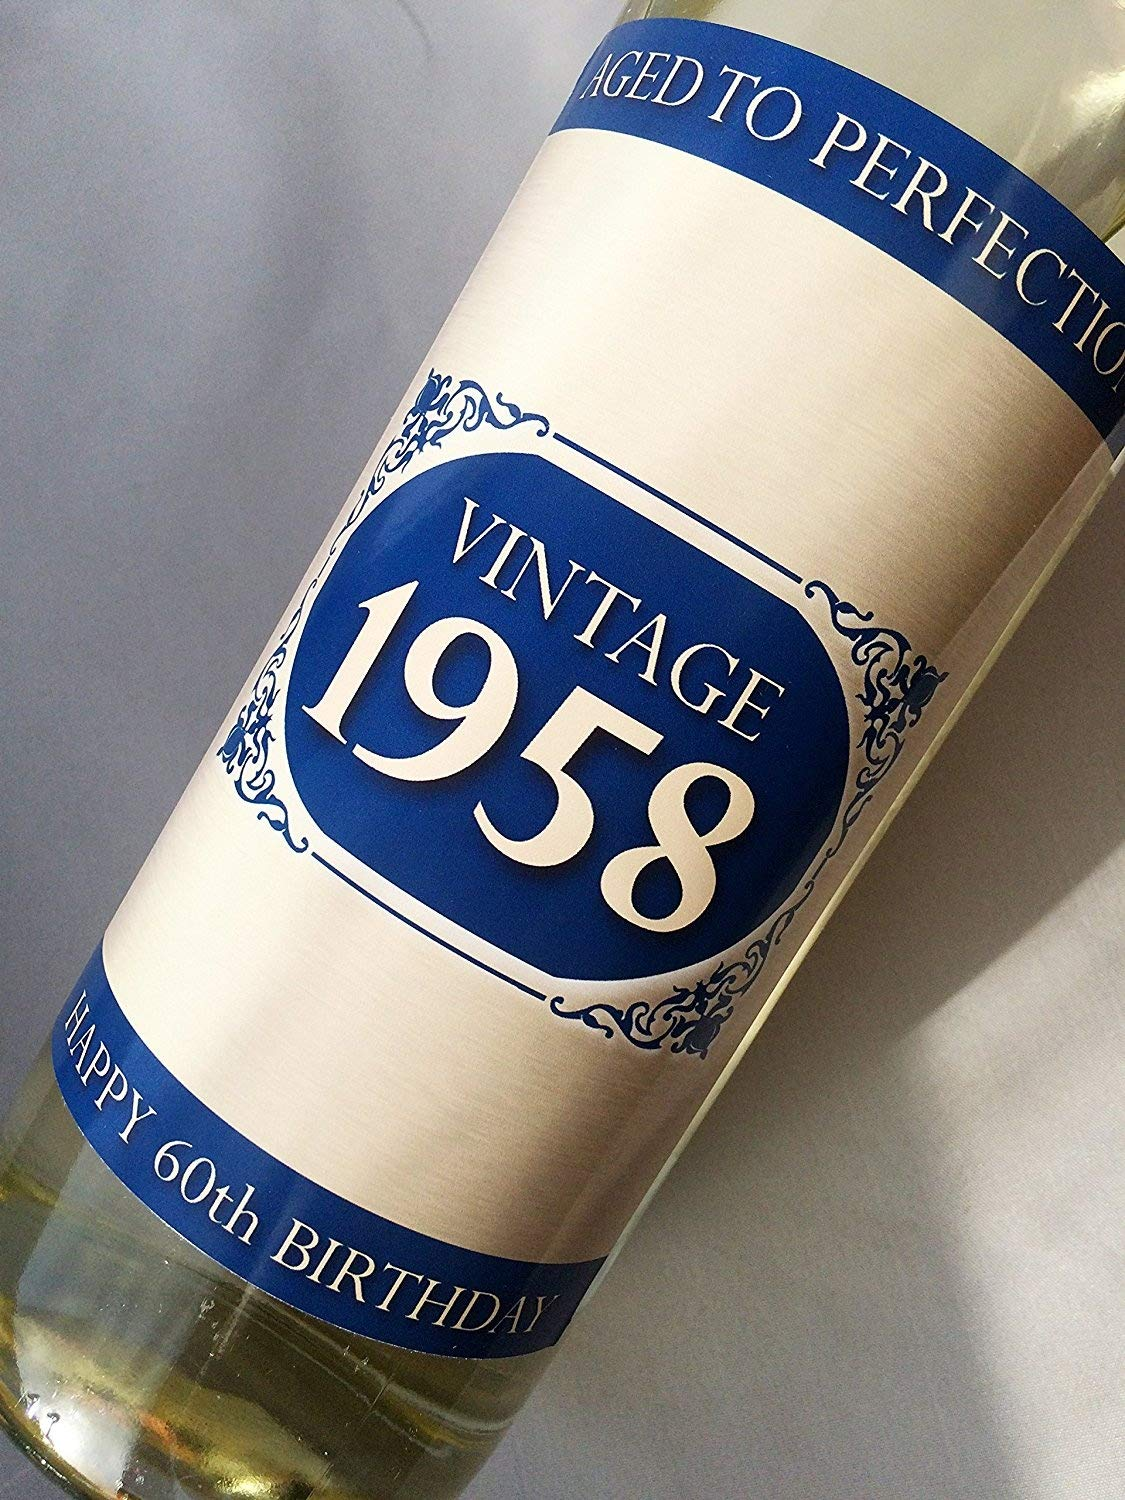 1958 Vintage Blue Happy 60th Birthday 2018 Wine Bottle Label Gift for Women and Men Purple Products